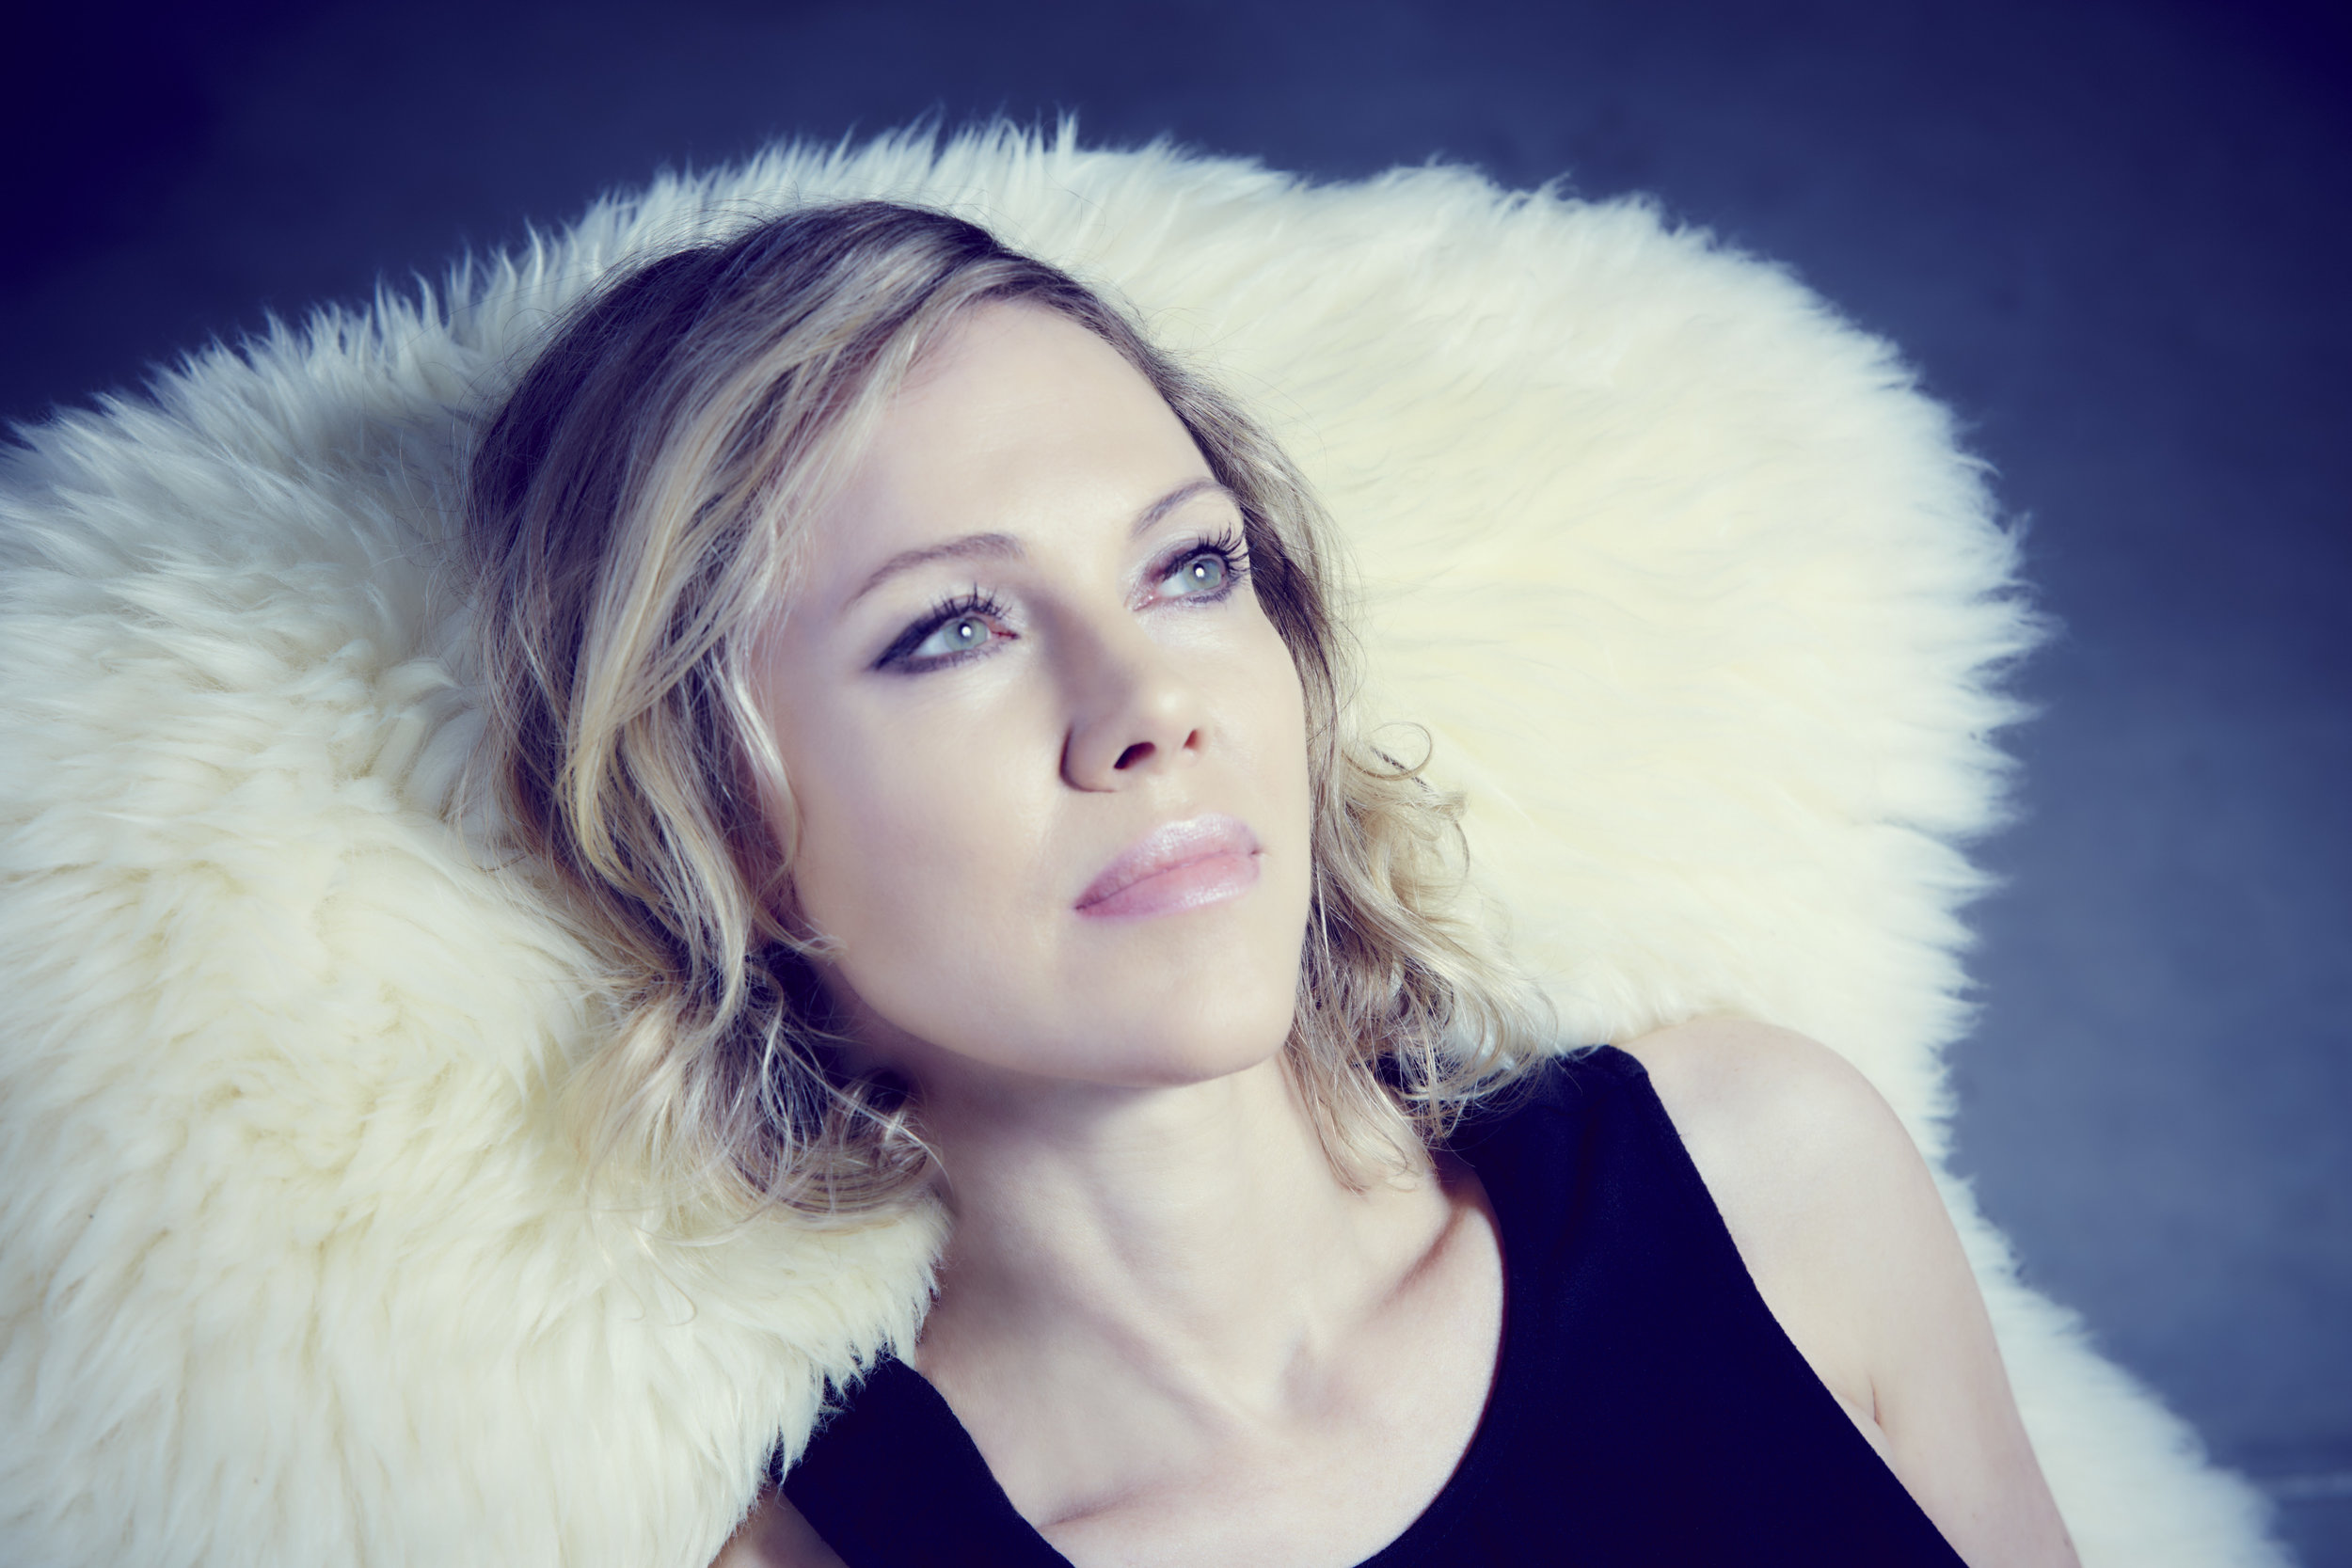 Britta_Phillips_4_photo_by_Luz_Gallardo.jpg